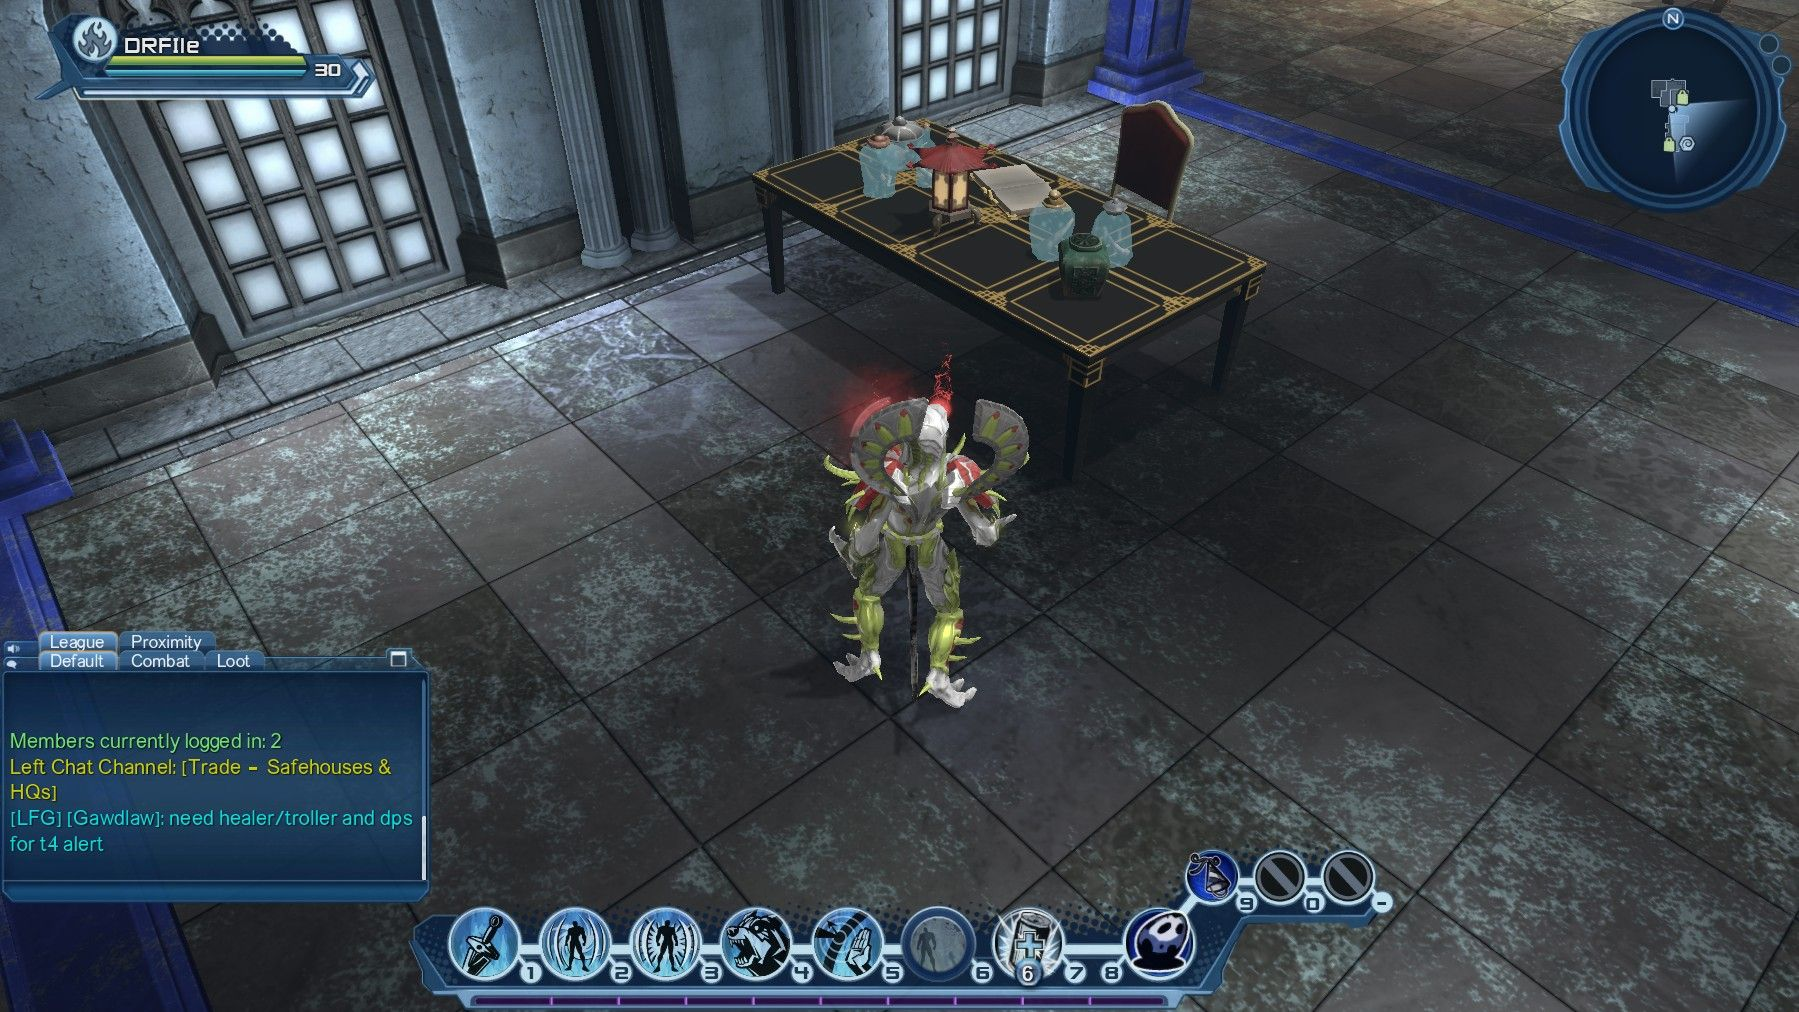 dynasty apothecary table universe fansite dcuo furniture dcgame occult accent location thumbnail middle size clear plexiglass coffee shaped executive desk grey and end tables